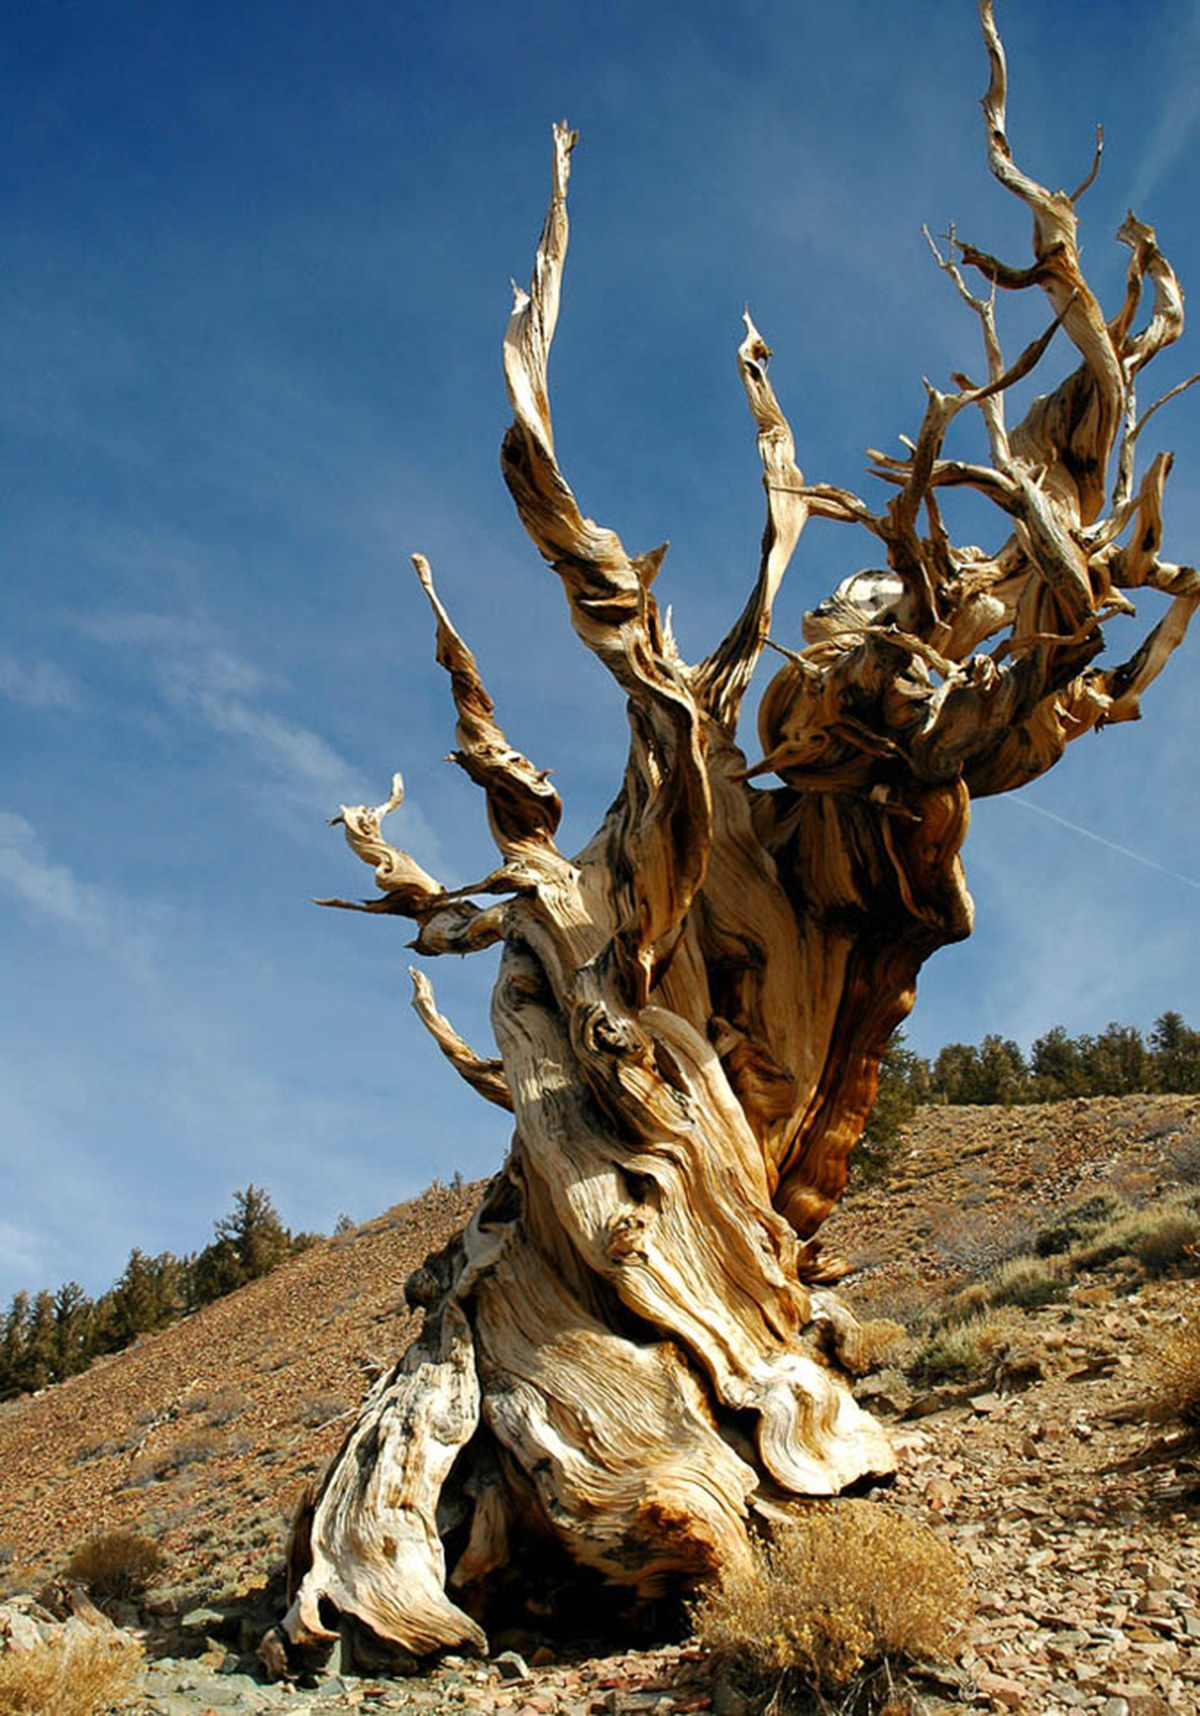 These Are the Oldest Trees on the Planet | WIRED